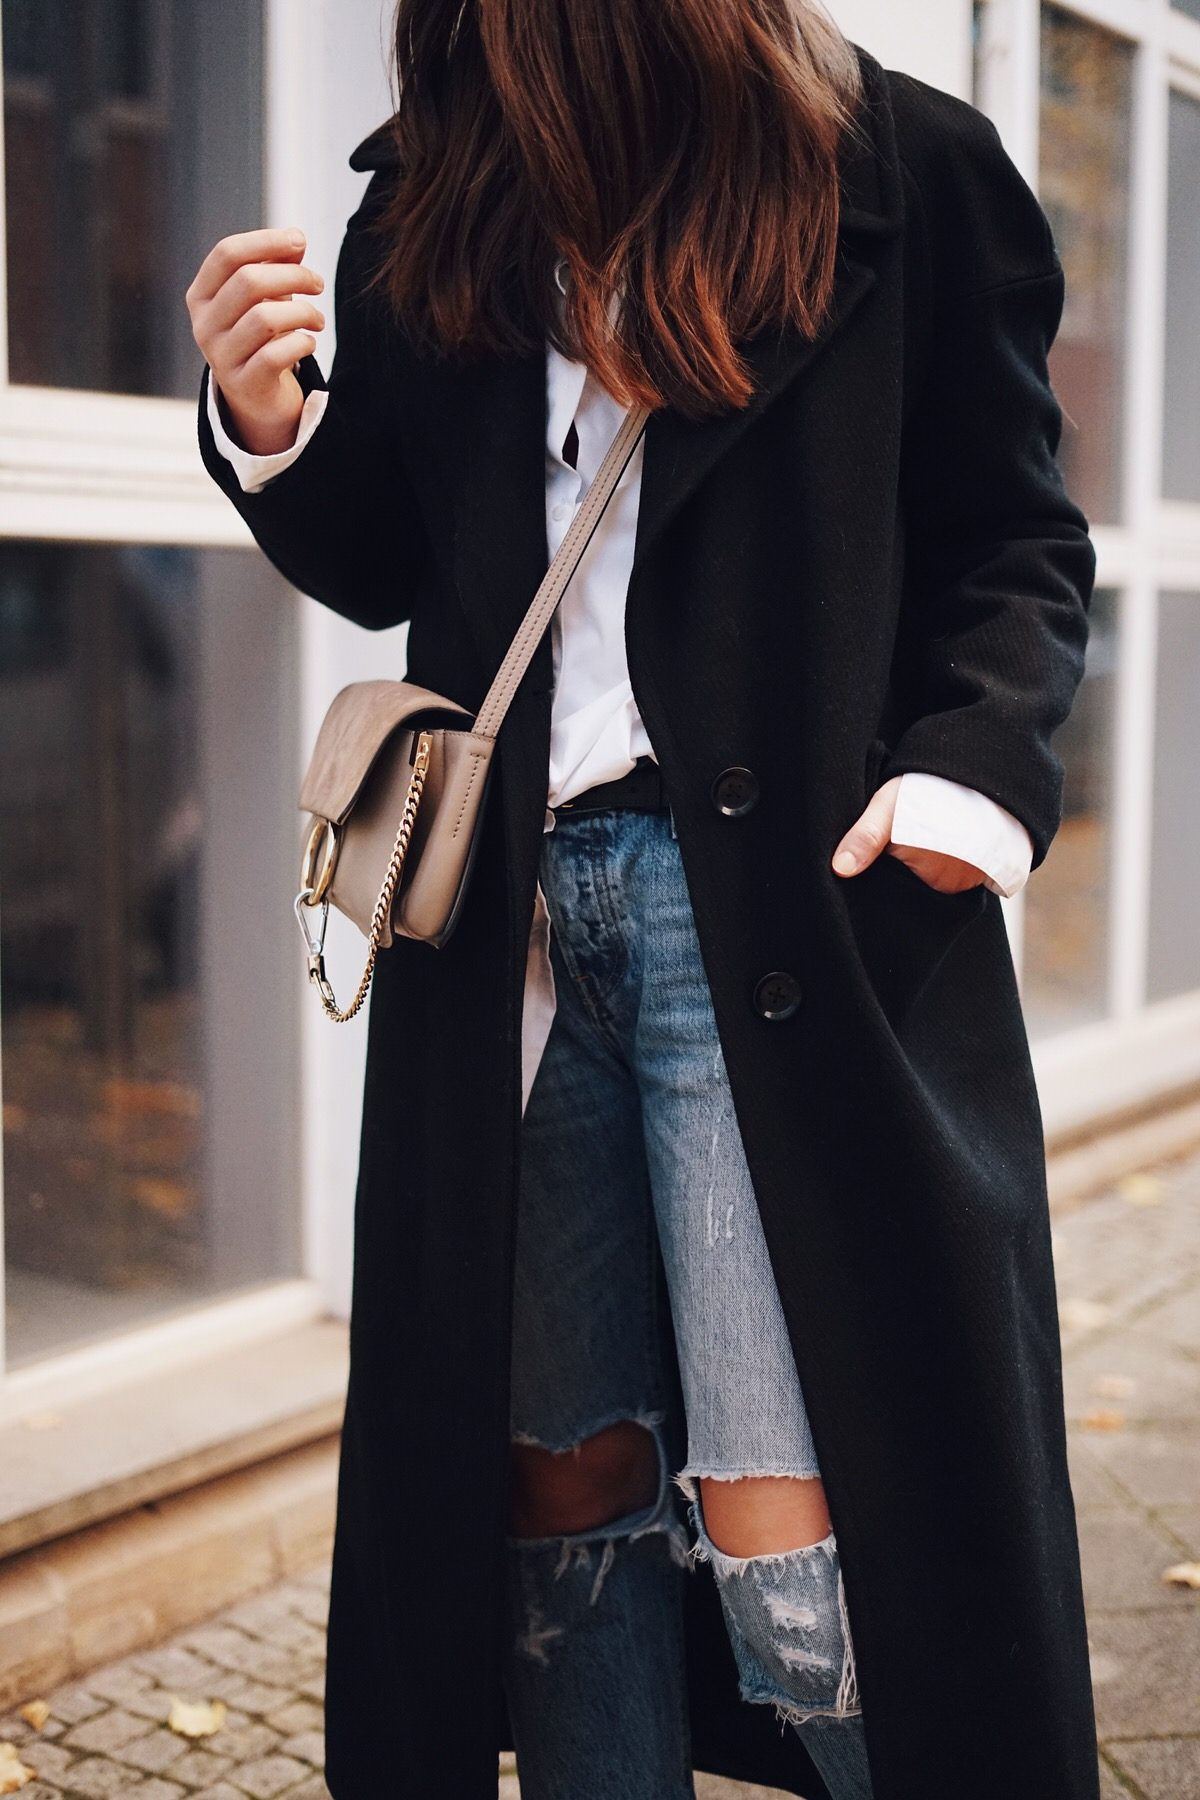 Best Secret, Online-Shop, Streetstyle, Bronx, United Colors of Benneton, Chloé, Levis, American Vintage, Beanie, Mantel, Boots